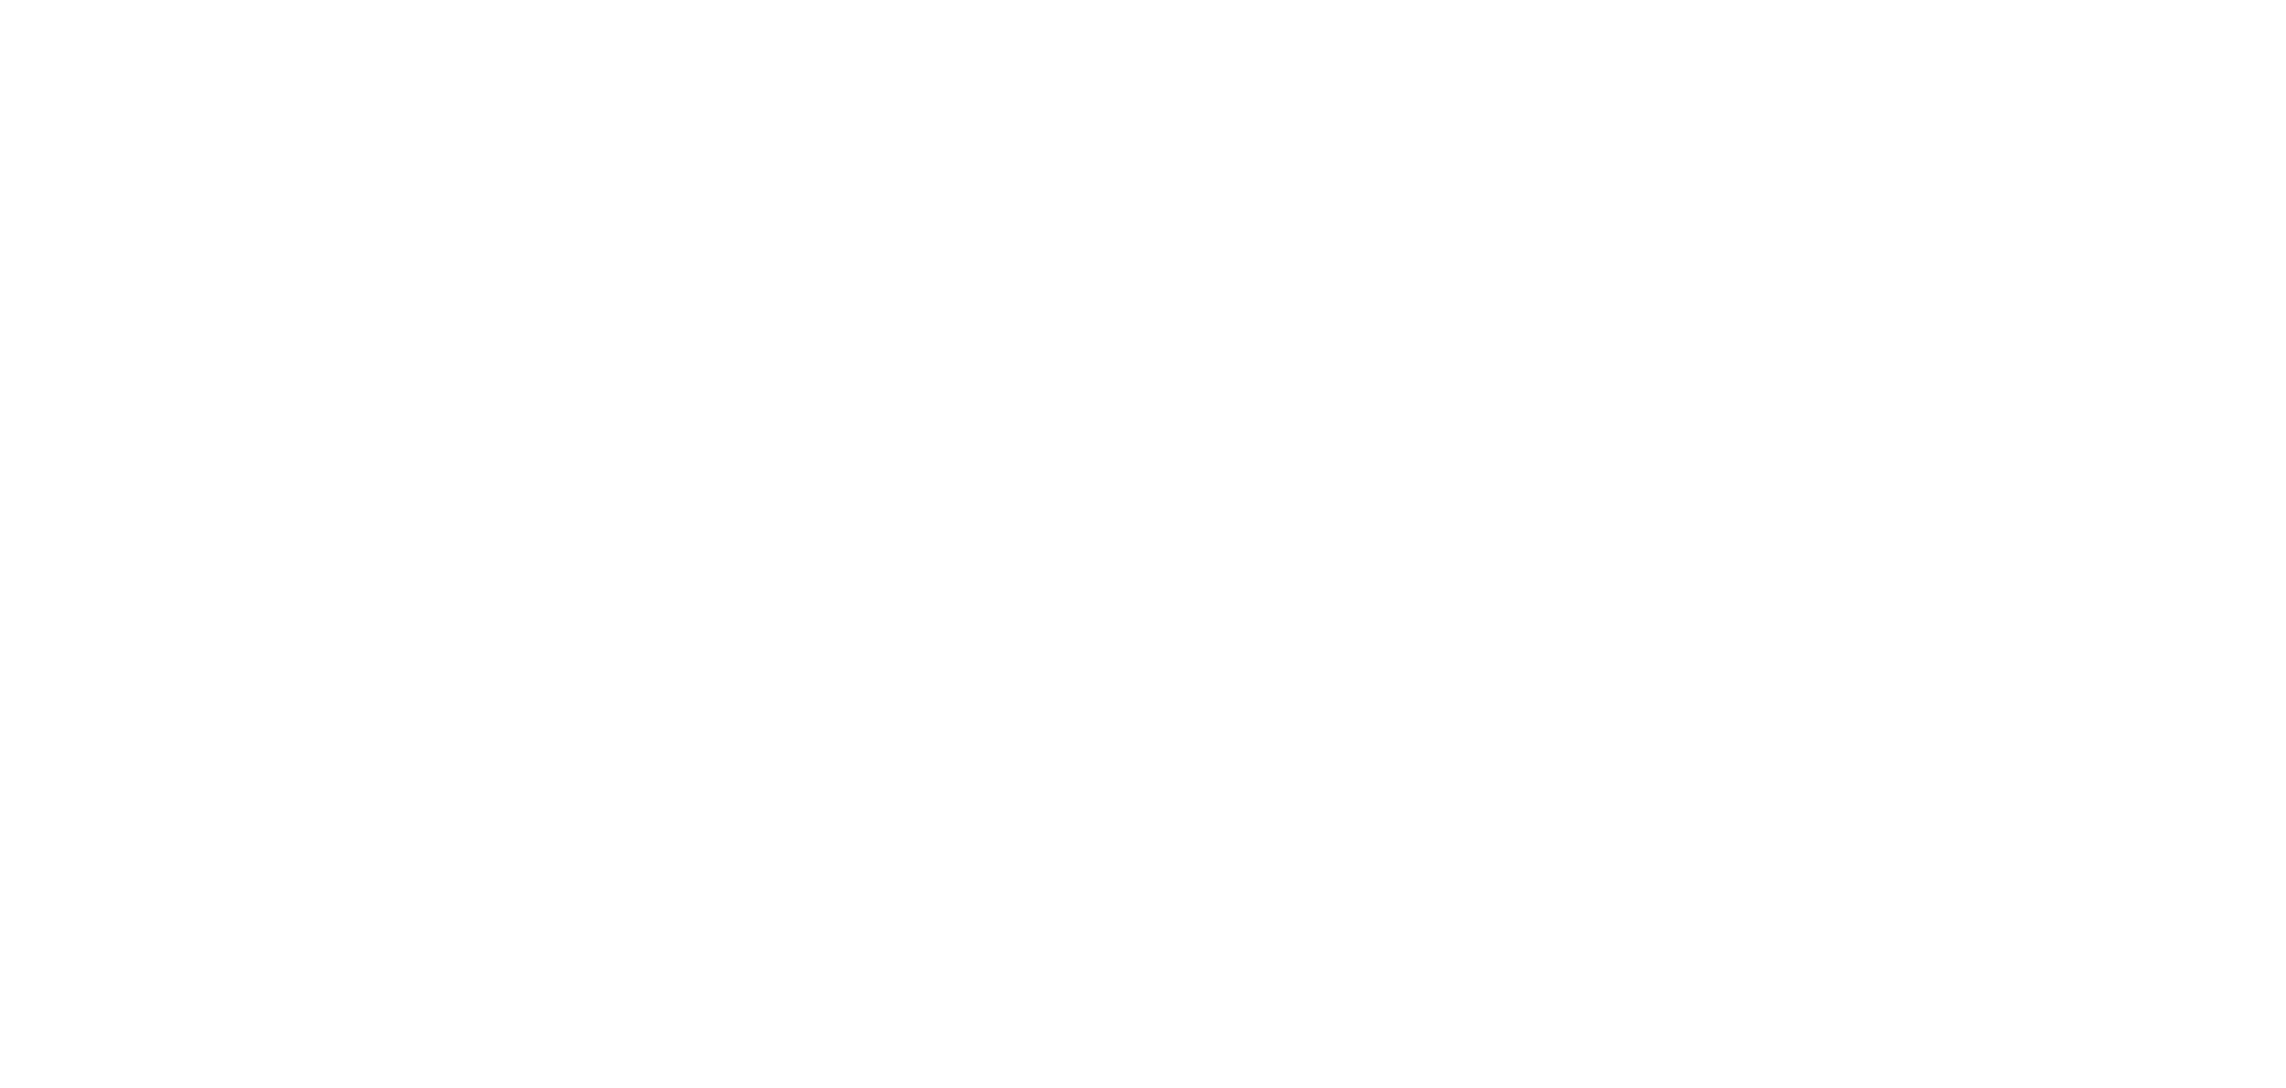 Fresh & Coffee